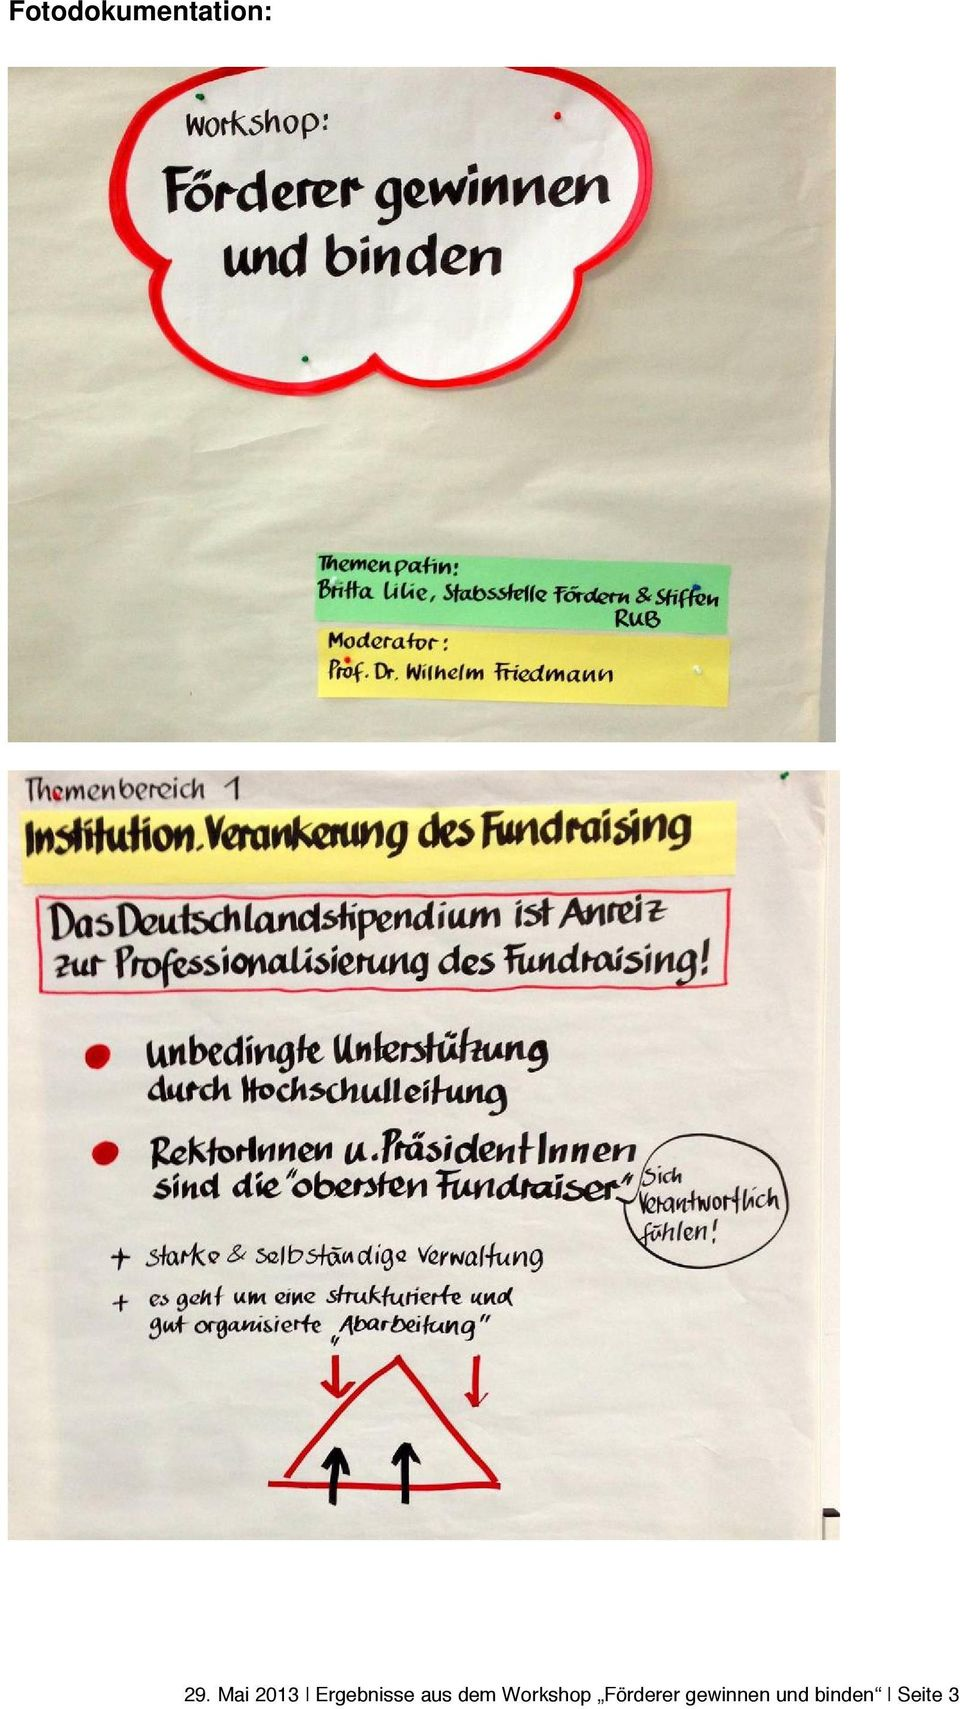 Wilhelm Friedmann Foto: Notizen des Workshops Themenbereich 1 Institutionelle Verankerung des Fundraising Das Deutschlandstipendium ist Anreiz zur Professionalisierung